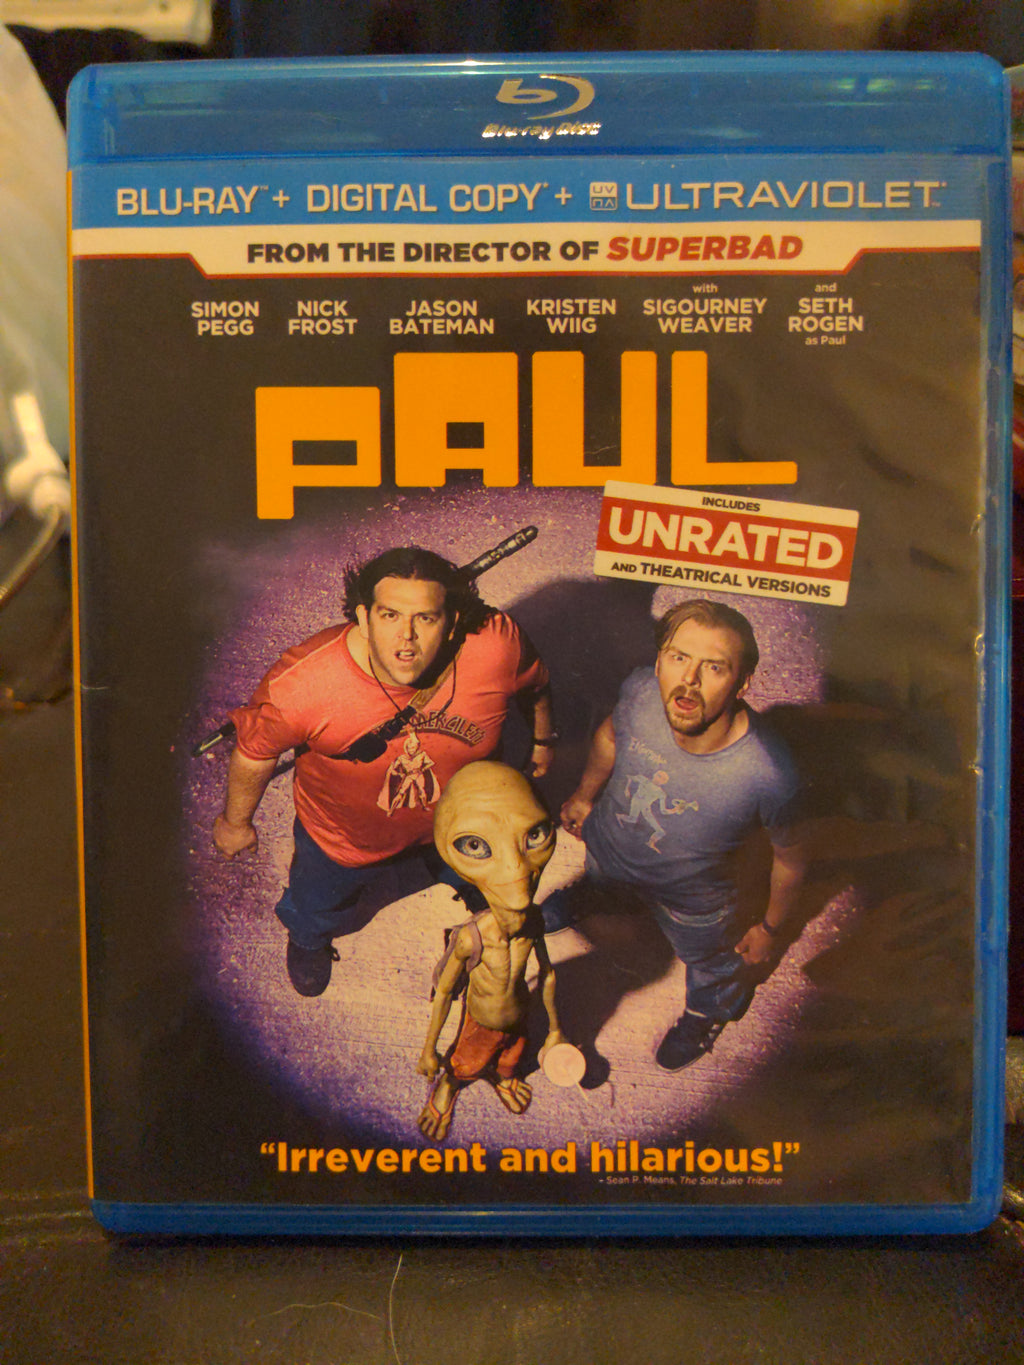 Paul Unrated & Theatrical Versions Blu-Ray DVD - Simon Pegg Nick Frost Jason Bateman